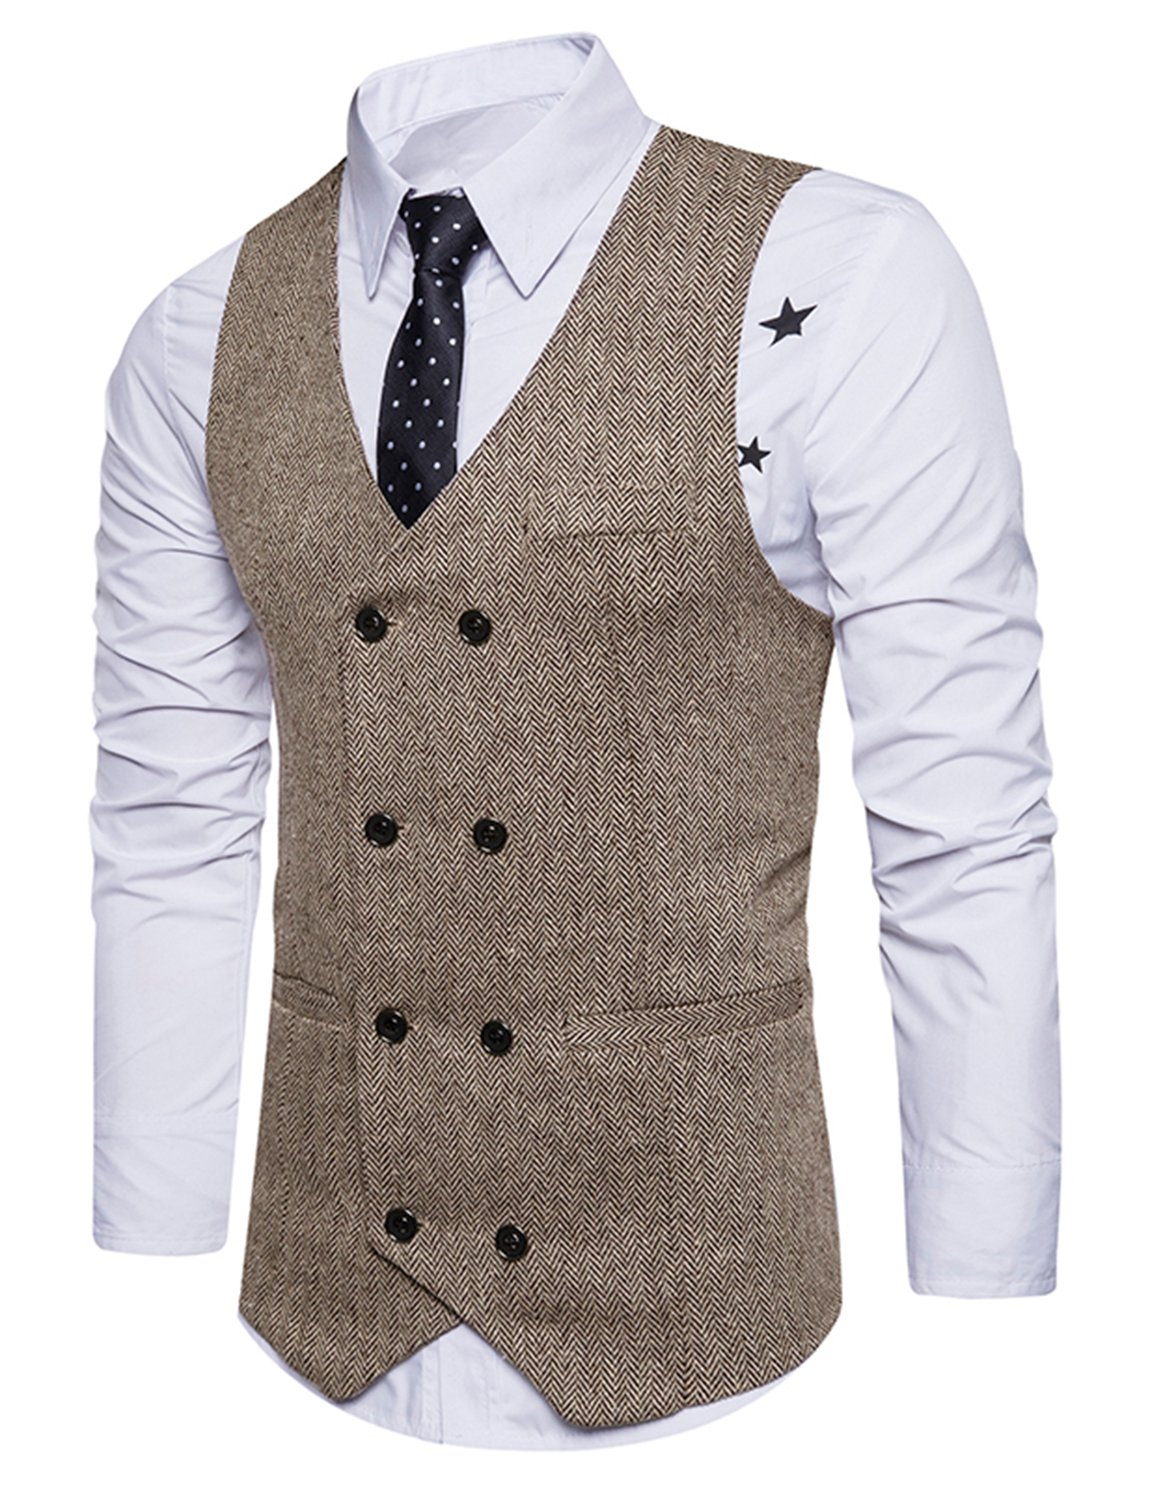 Boom Fashion Mens Double Breasted Tweed Vintage Gentleman British Business Casual Waistcoat M17UUS0829-21